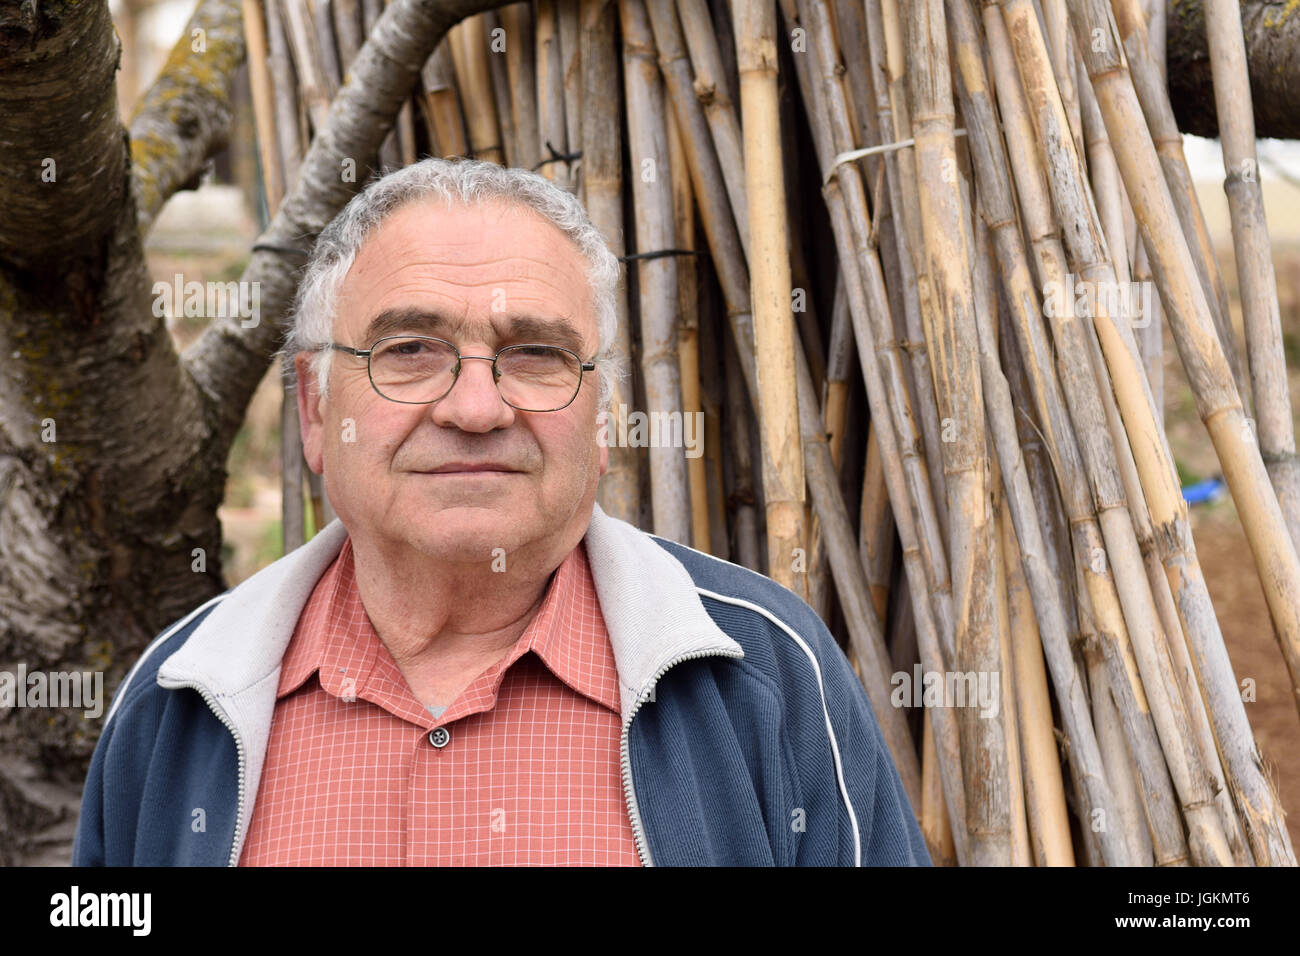 portrait of a retired man and relaxed - Stock Image